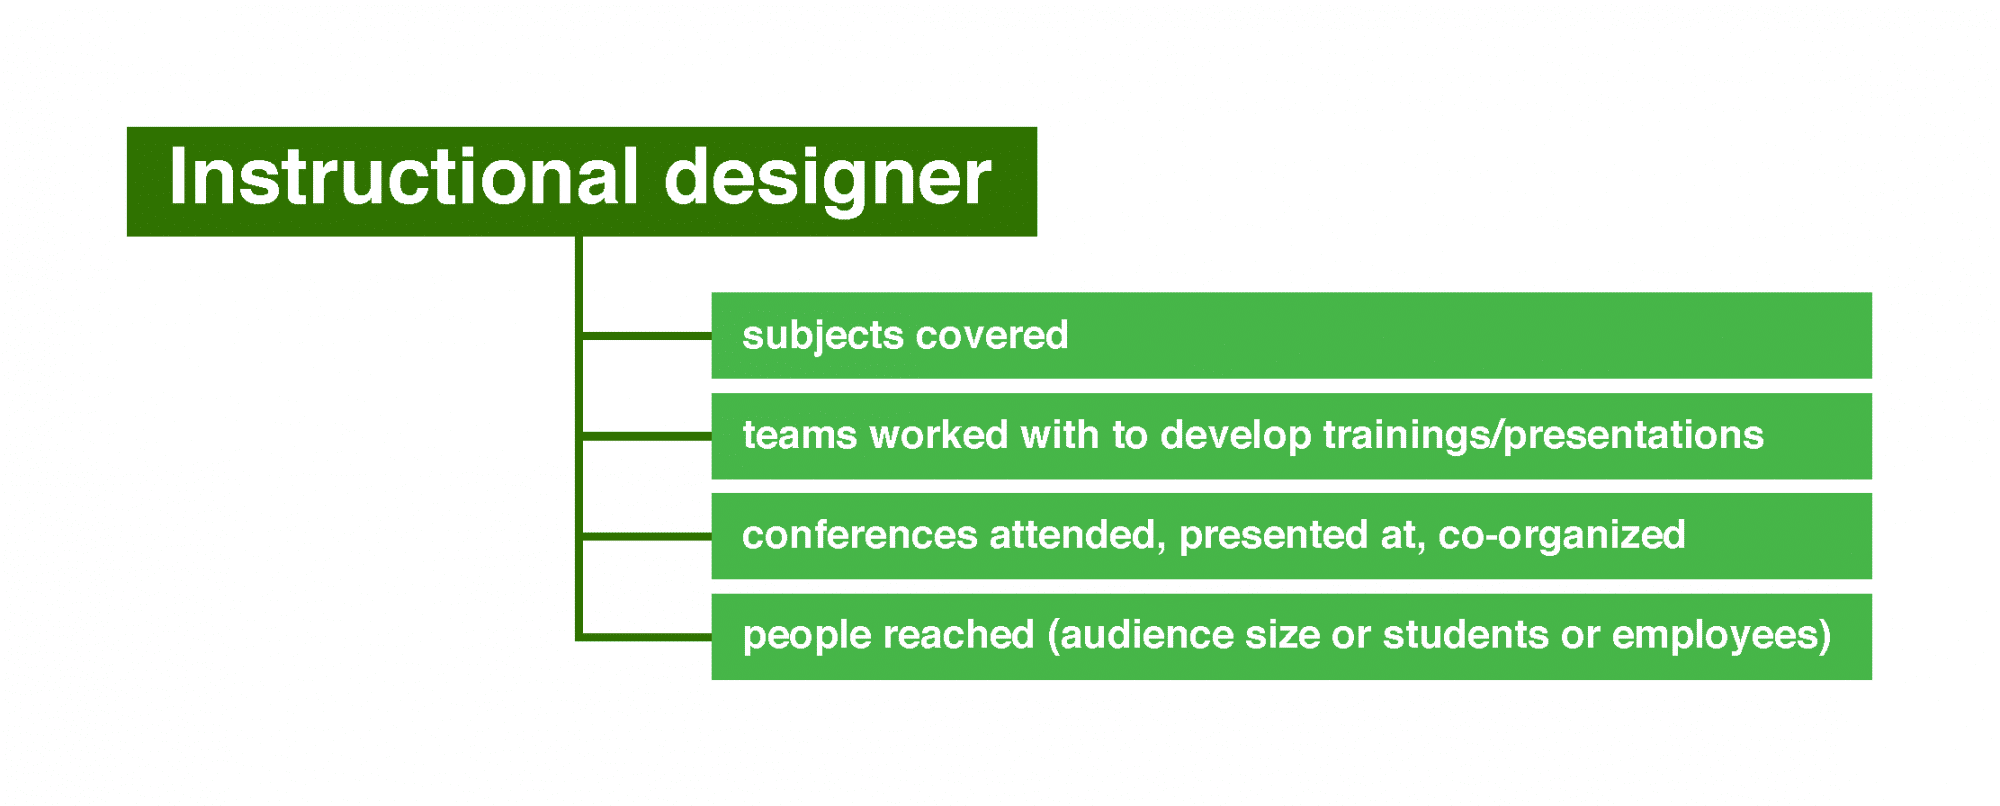 Potential numbers for instructional designers